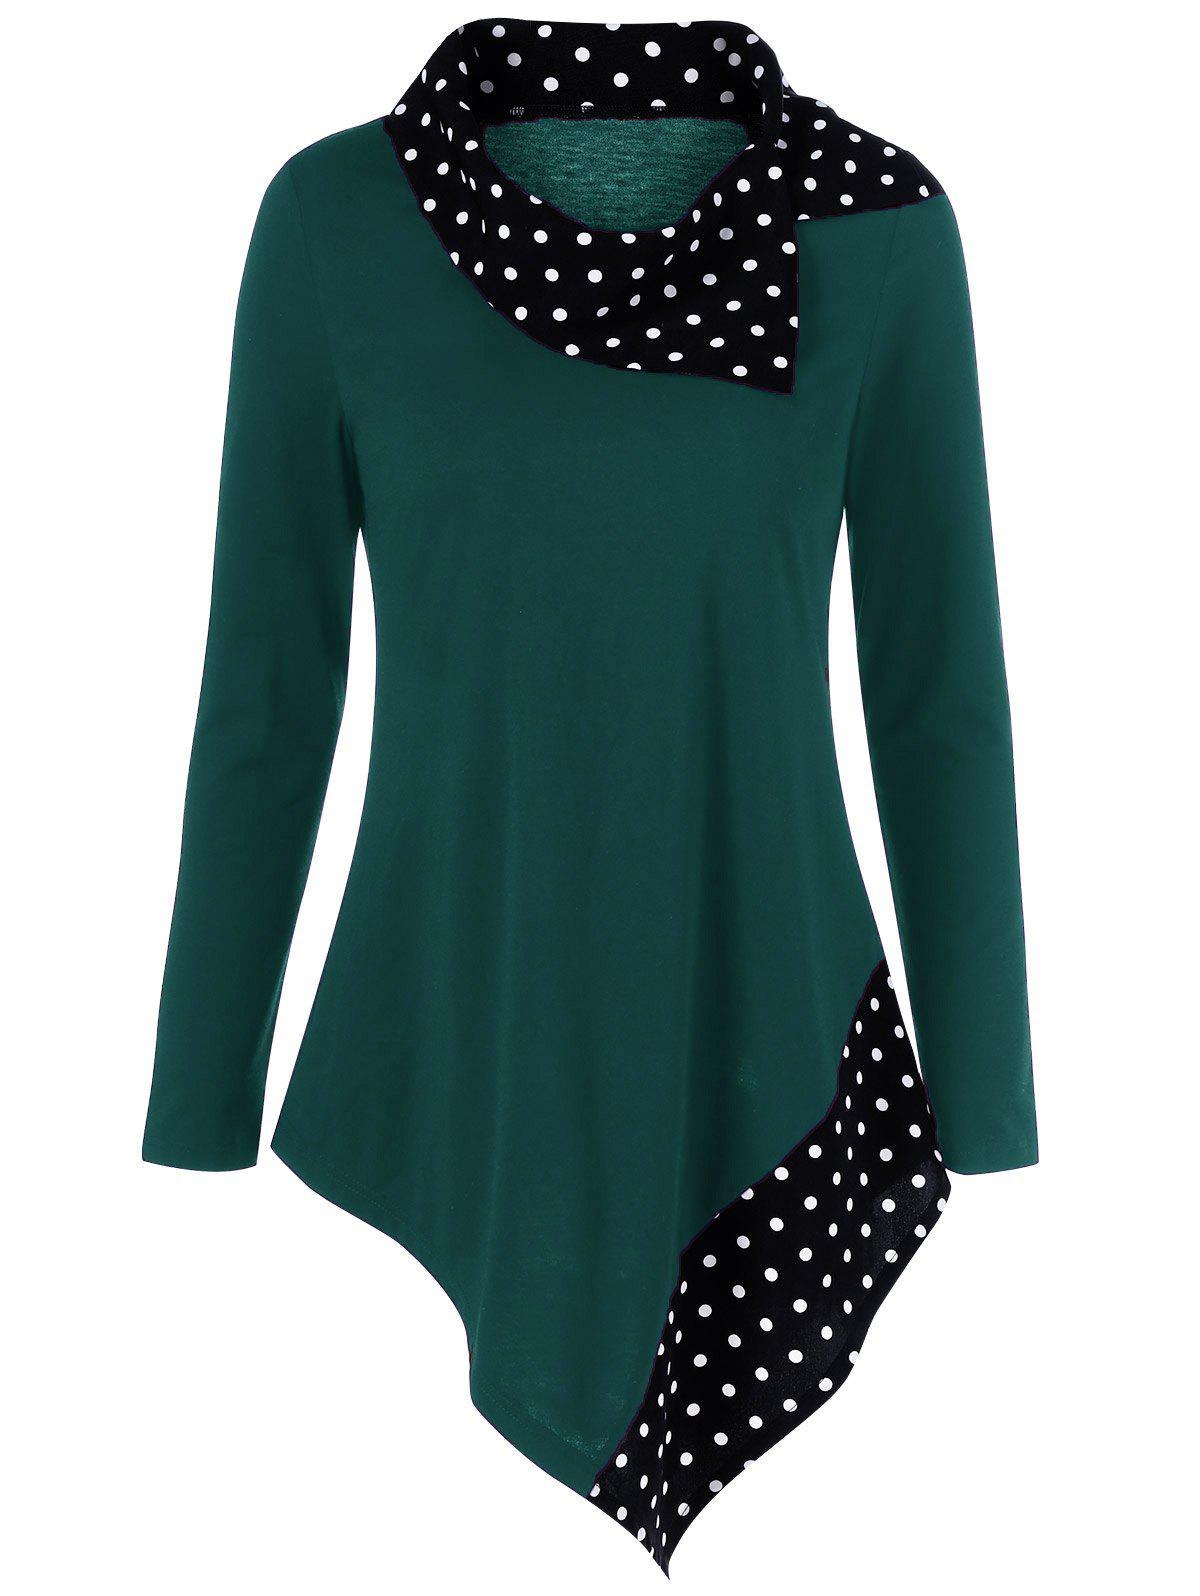 Polka Dot Trim Asymmetrical T-Shirt - MALACHITE GREEN M